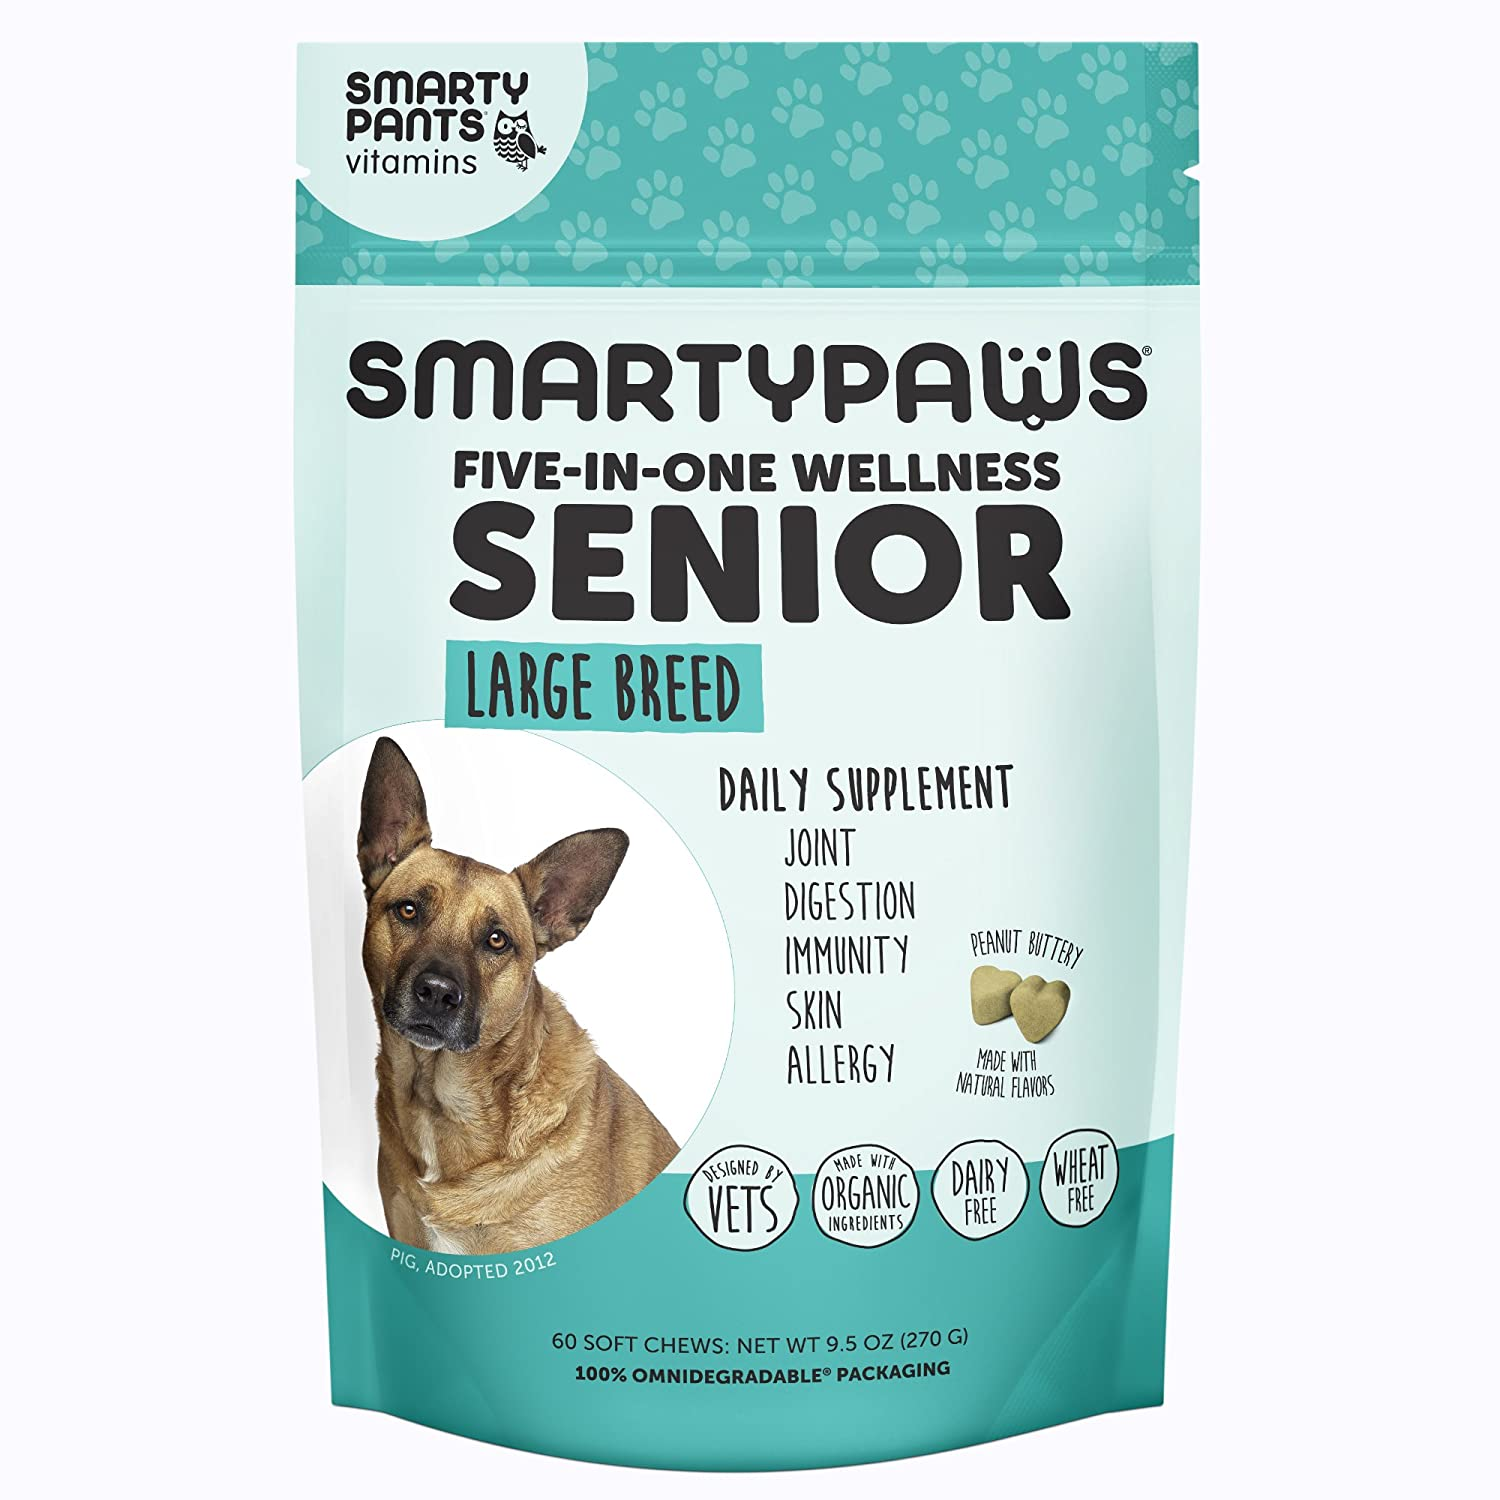 SmartyPants Vitamins Dog Supplement Chew – Glucosamine and Chondroitin, MSM for Joint Support, Fish Oil Omega 3, Probiotics, Organic Turmeric 60 Ct Senior 7 Years , Large 55 lbs.